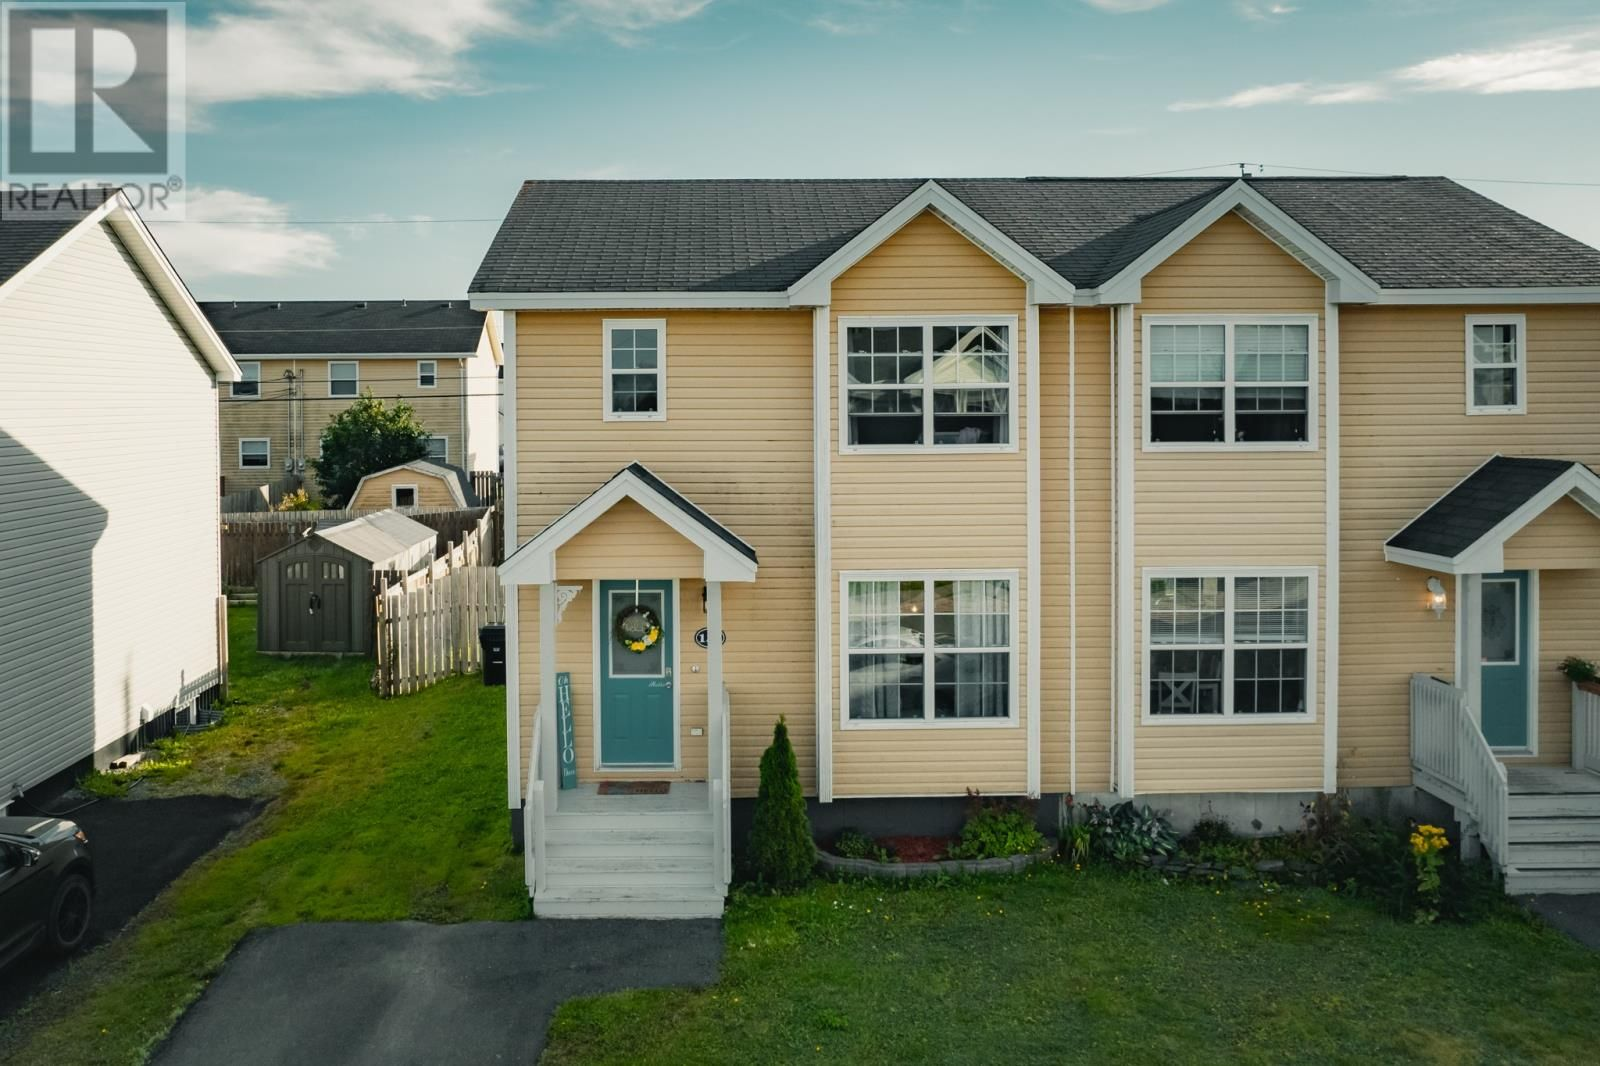 Main Photo: 135 Green Acre Drive in St. John's: House for sale : MLS®# 1236949